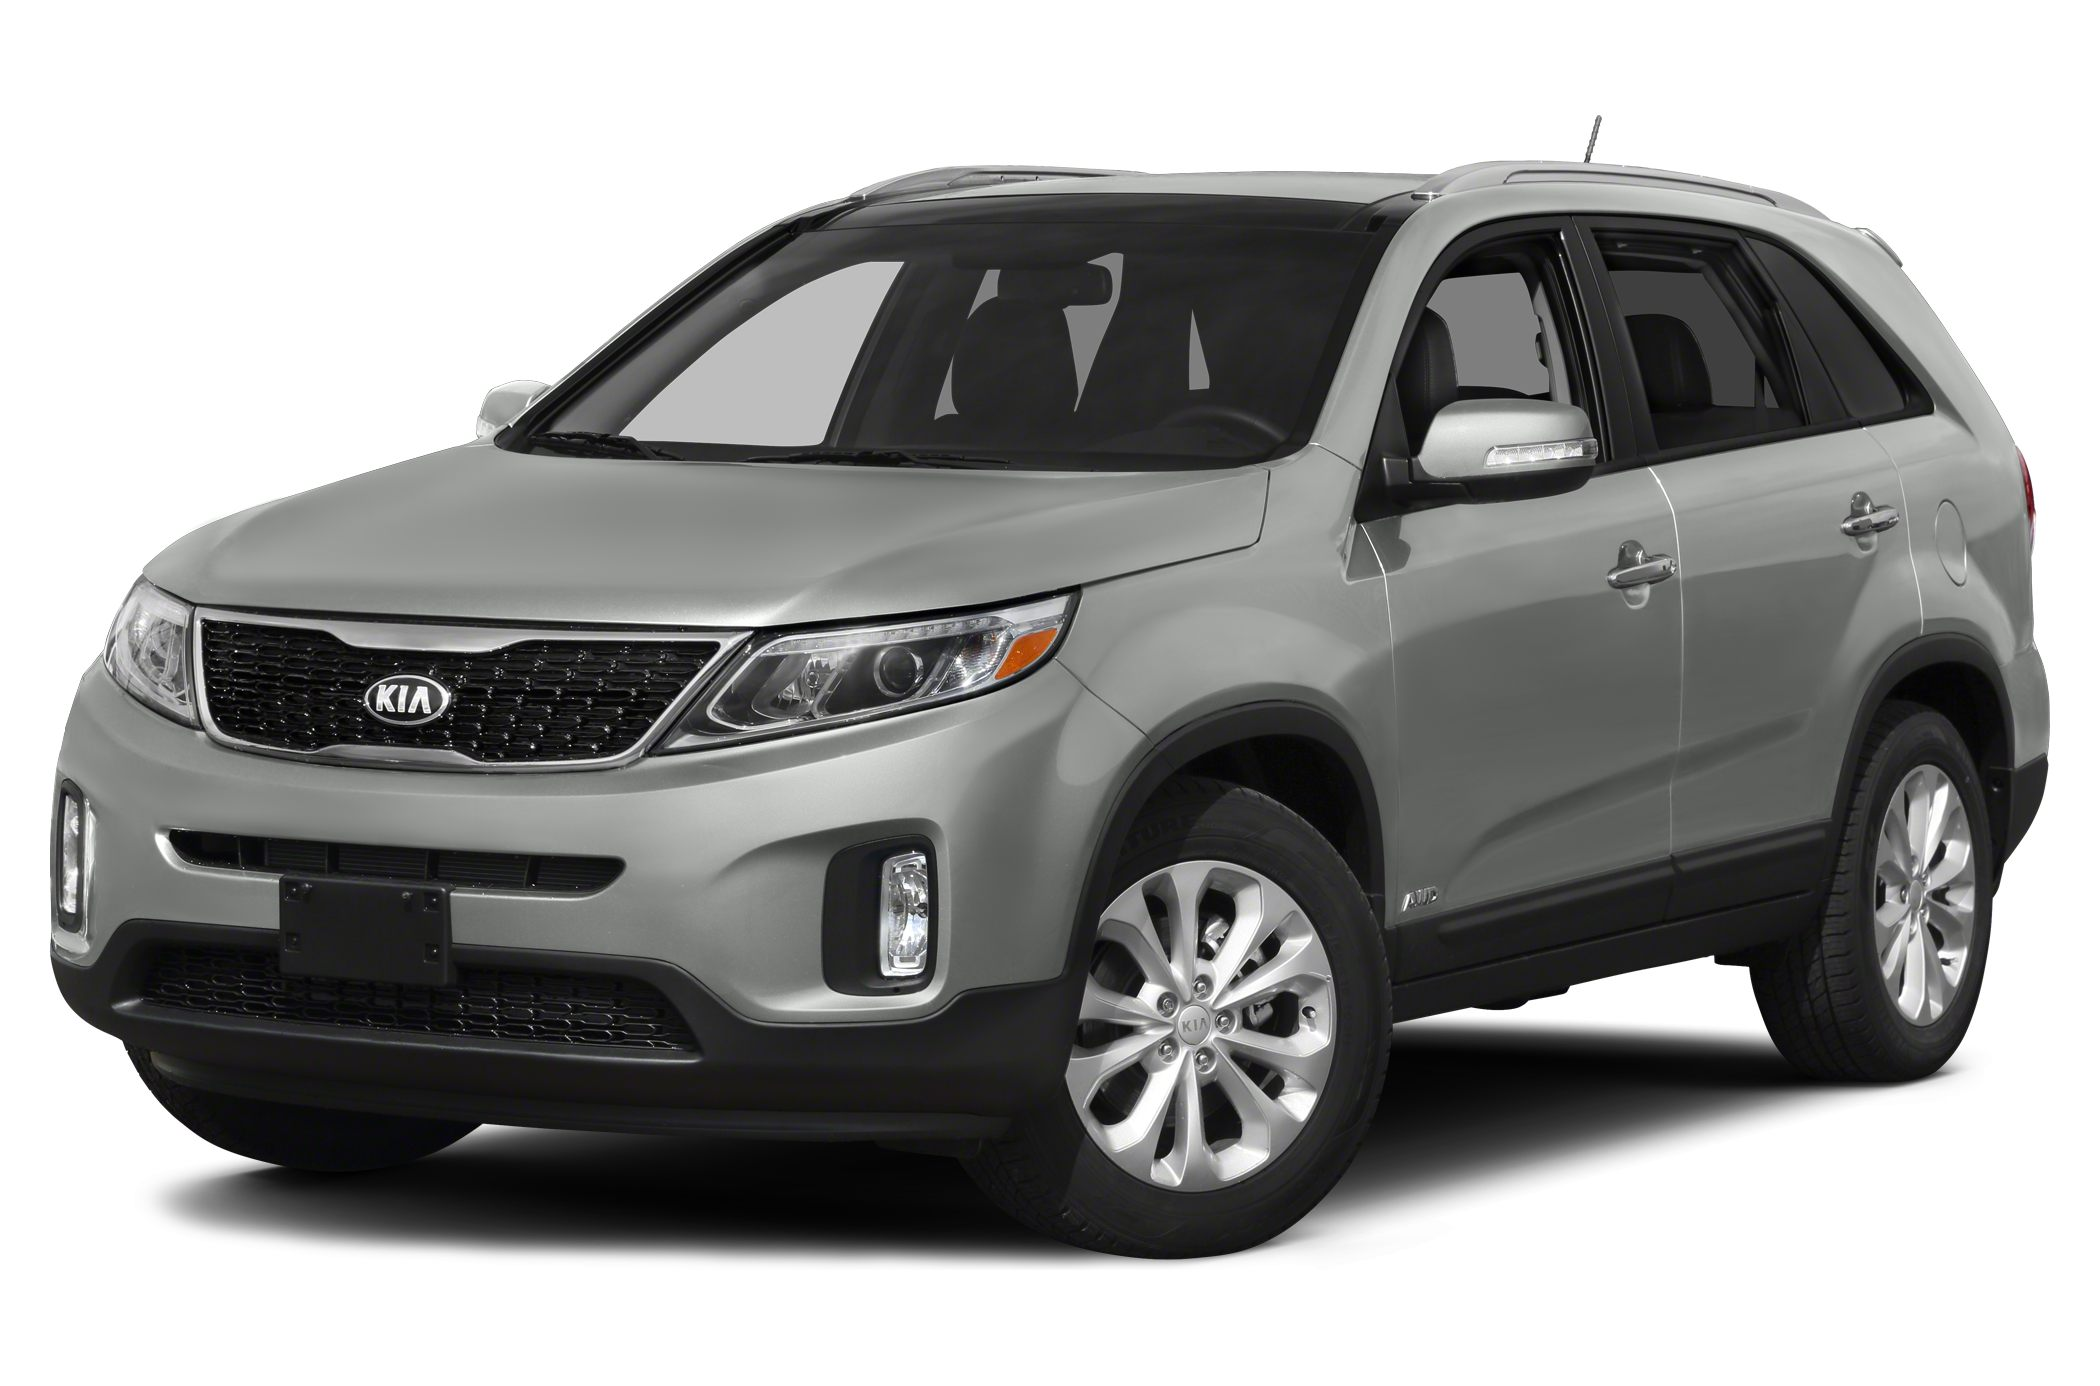 2015 Kia Sorento LX SUV for sale in Bedford for $25,373 with 10 miles.